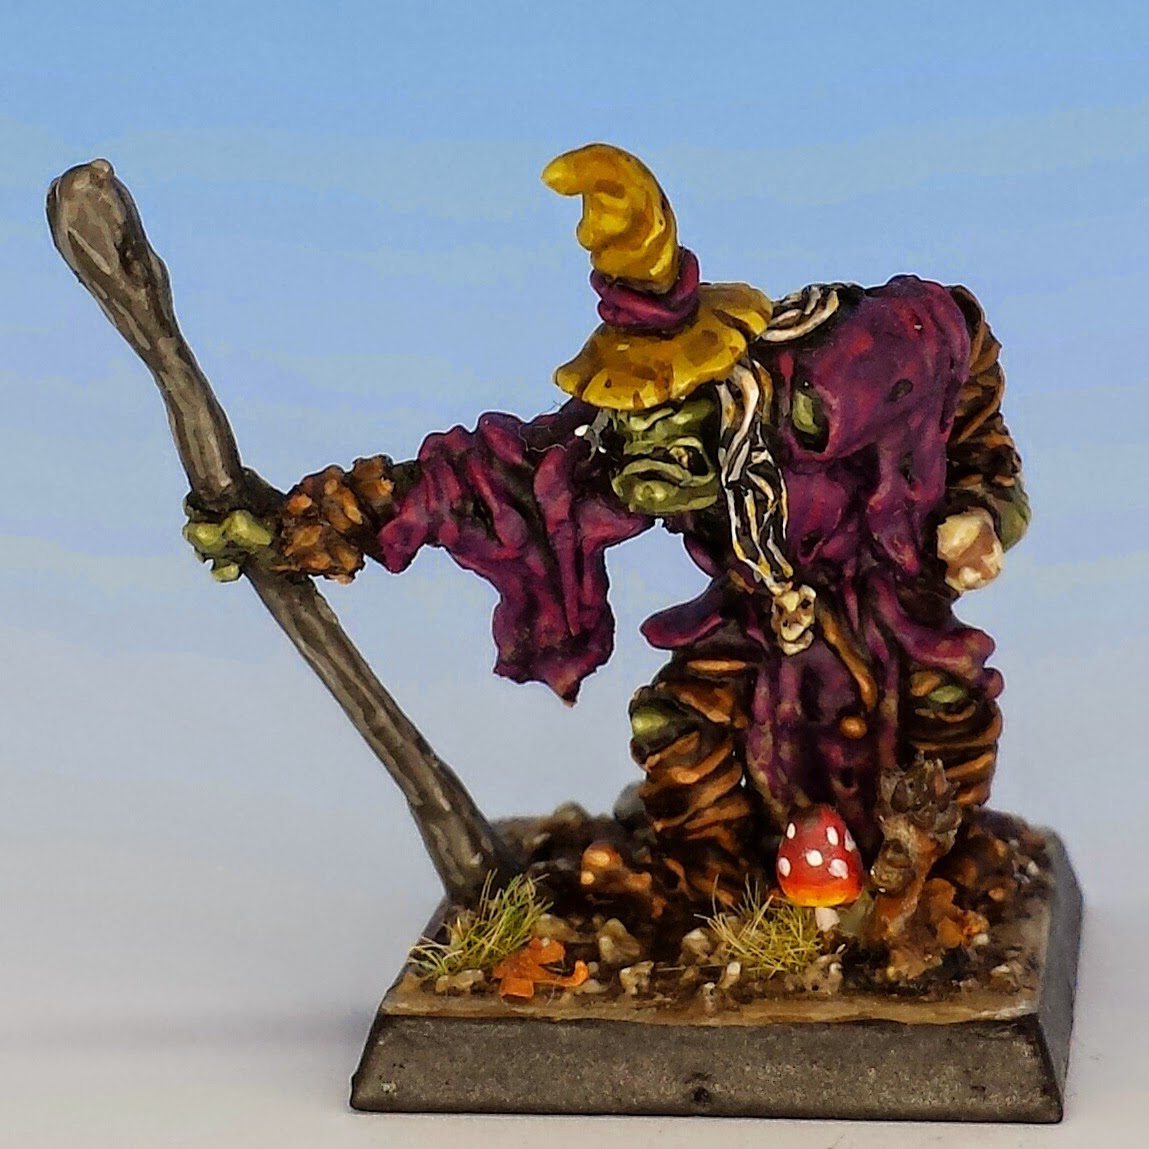 Mormo Jabberbinder, BC4 Citadel Miniatures (sculpted by Nick Lund)